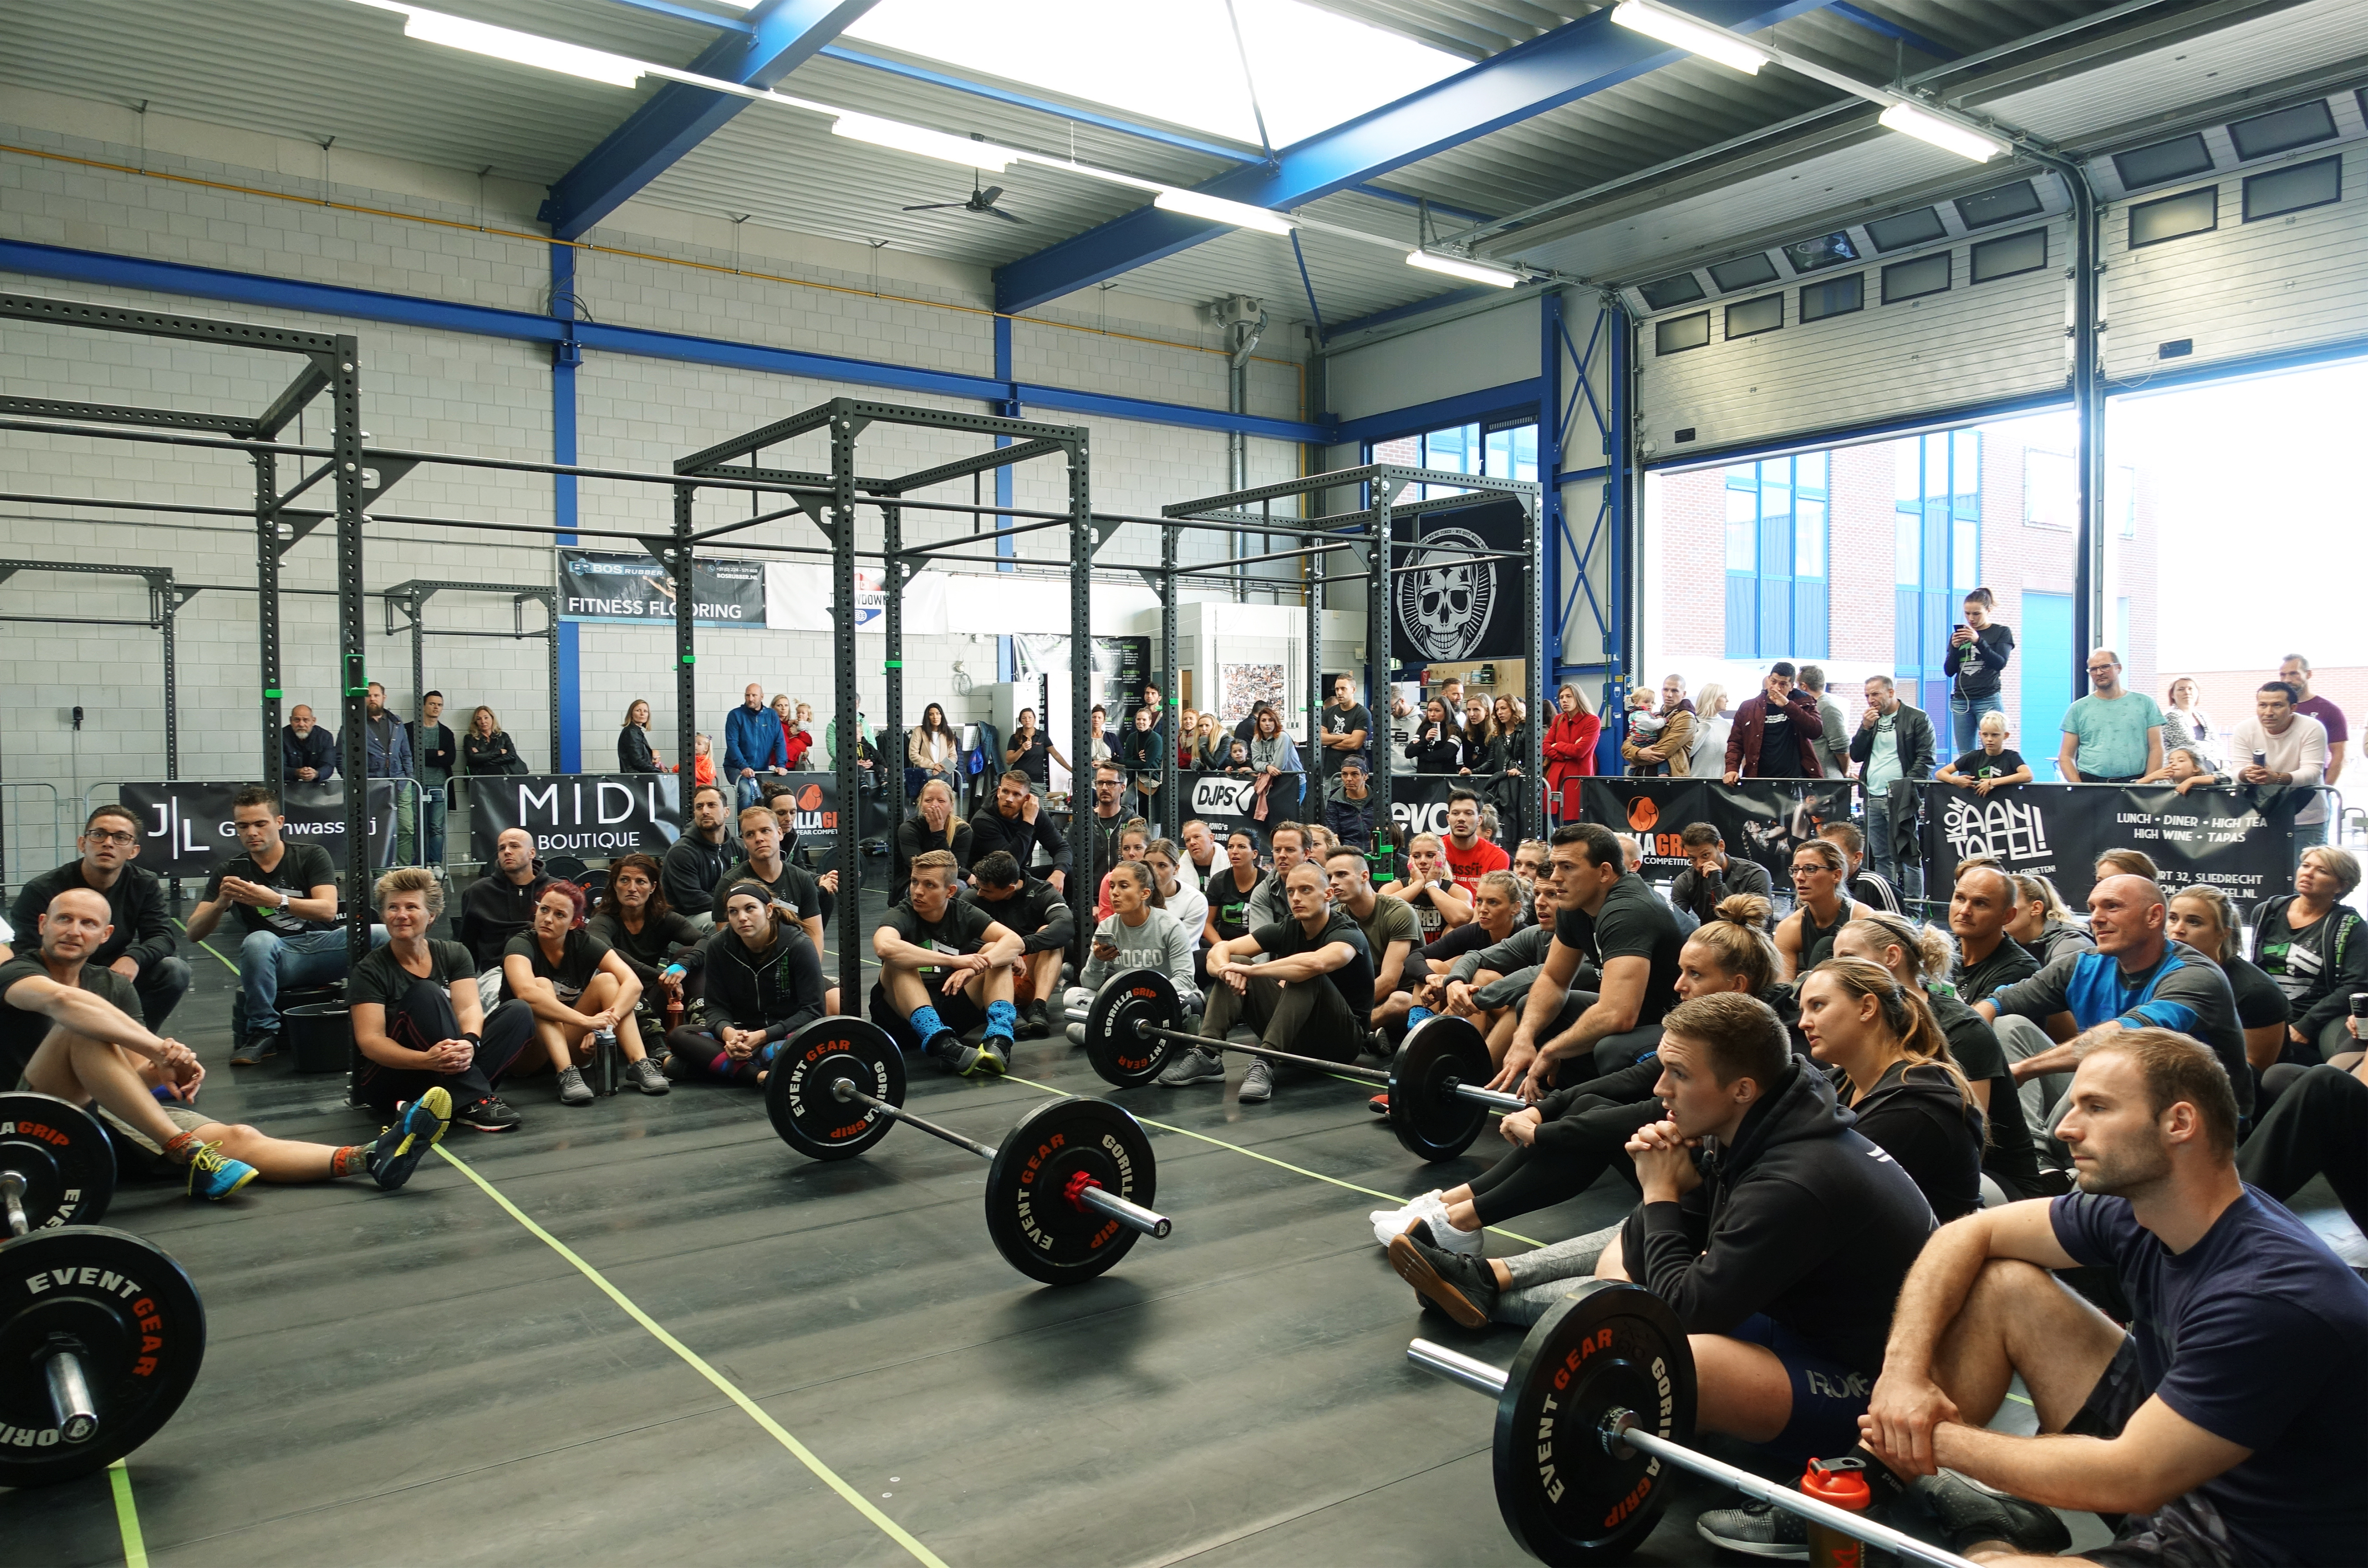 De CrossFit Sliedrecht Throwdown was een succes!